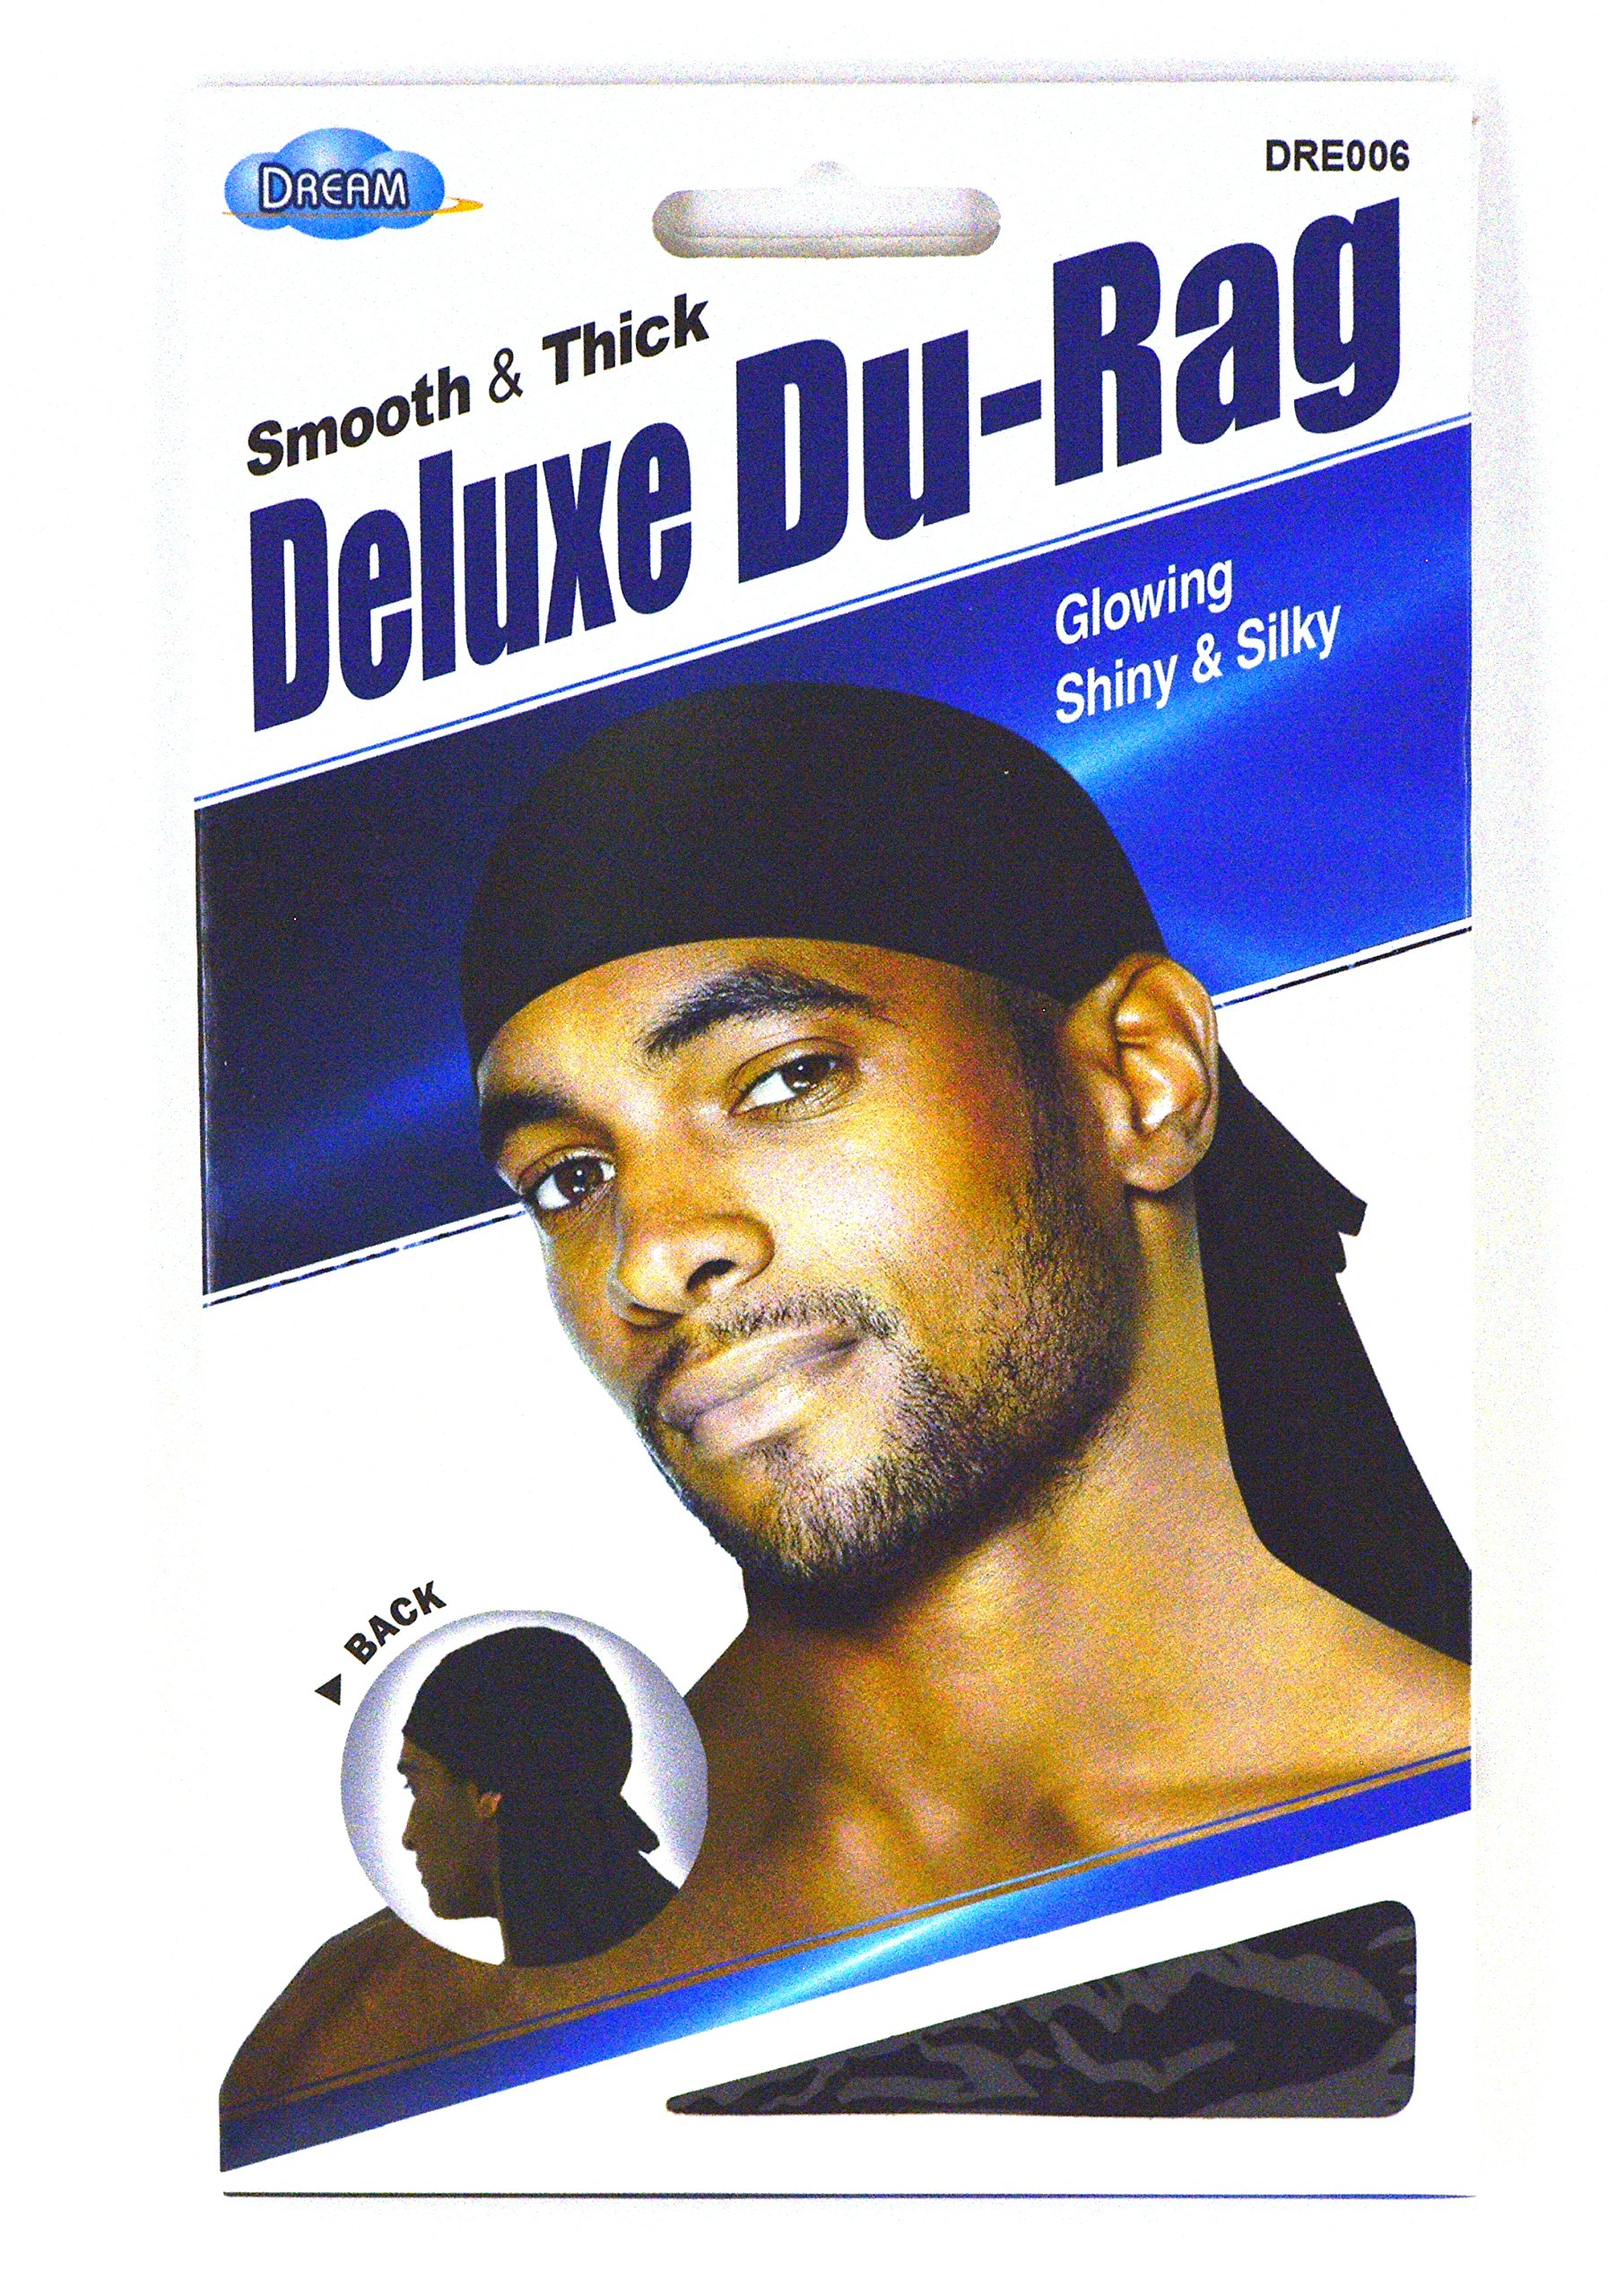 Dream Deluxe Du-Rag - Smooth & Thick, Superior Quality, Stretchable, Wrinkle Free, 100% Polyester